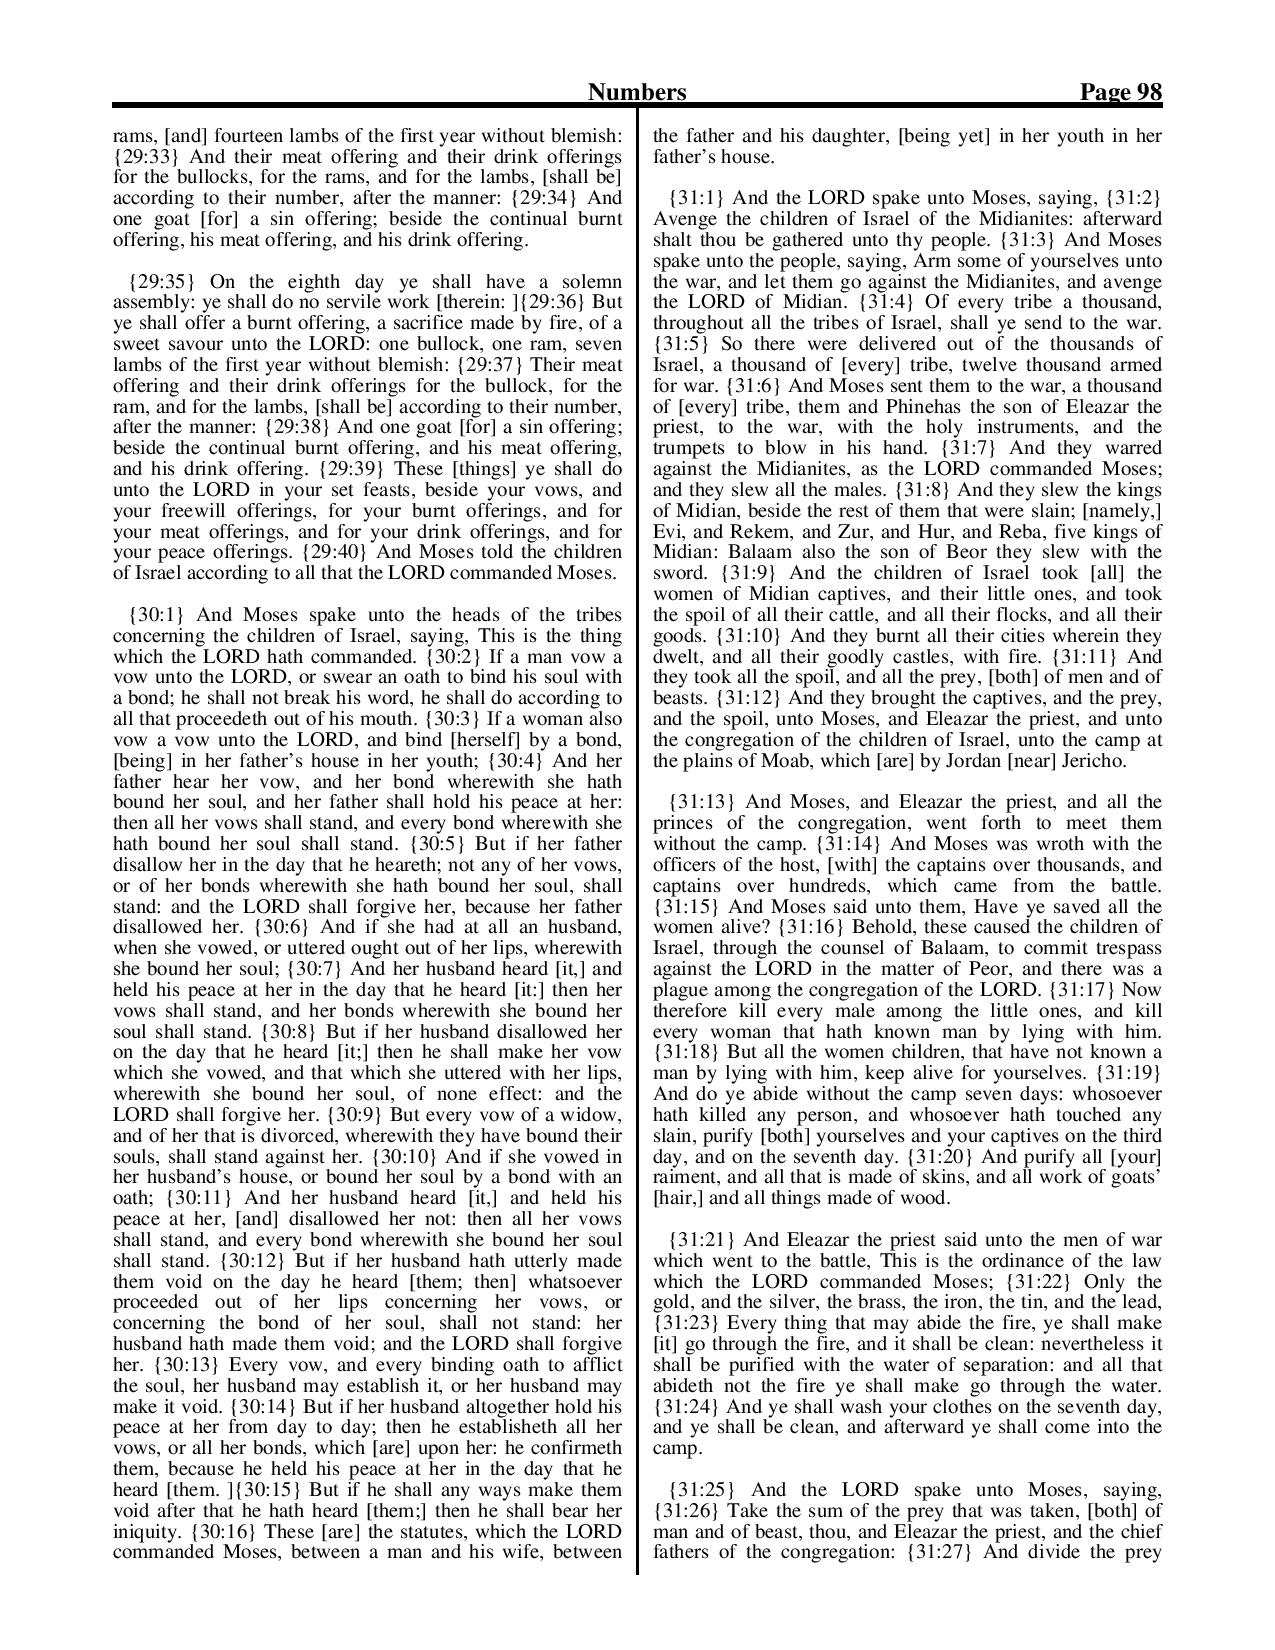 King-James-Bible-KJV-Bible-PDF-page-119